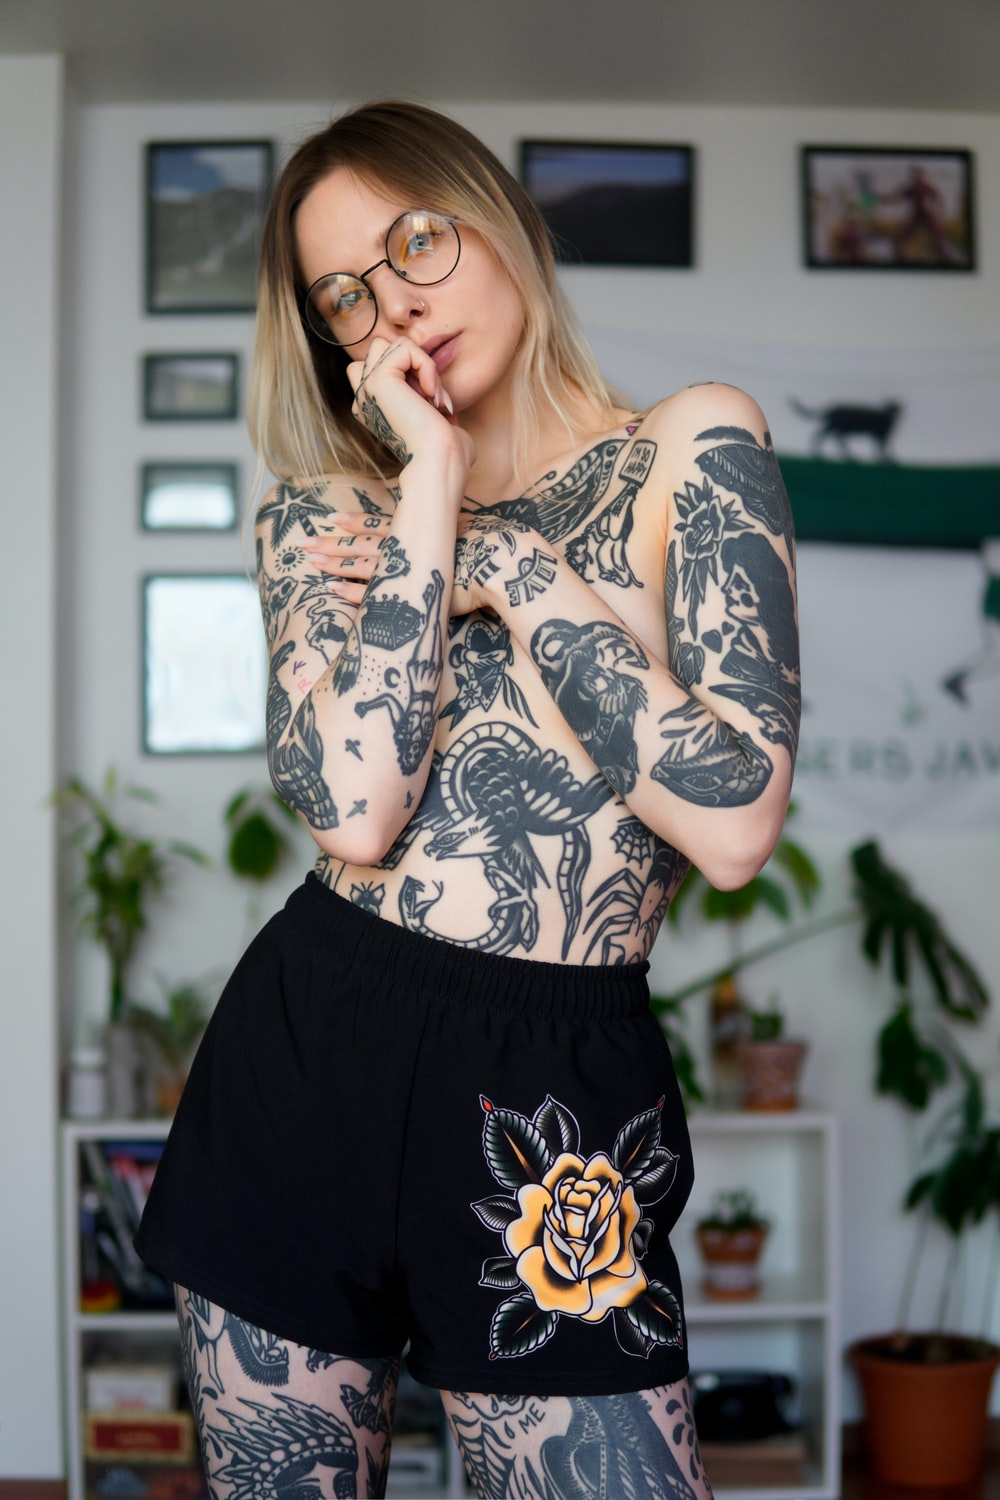 woman in black and white floral long sleeve shirt and black skirt